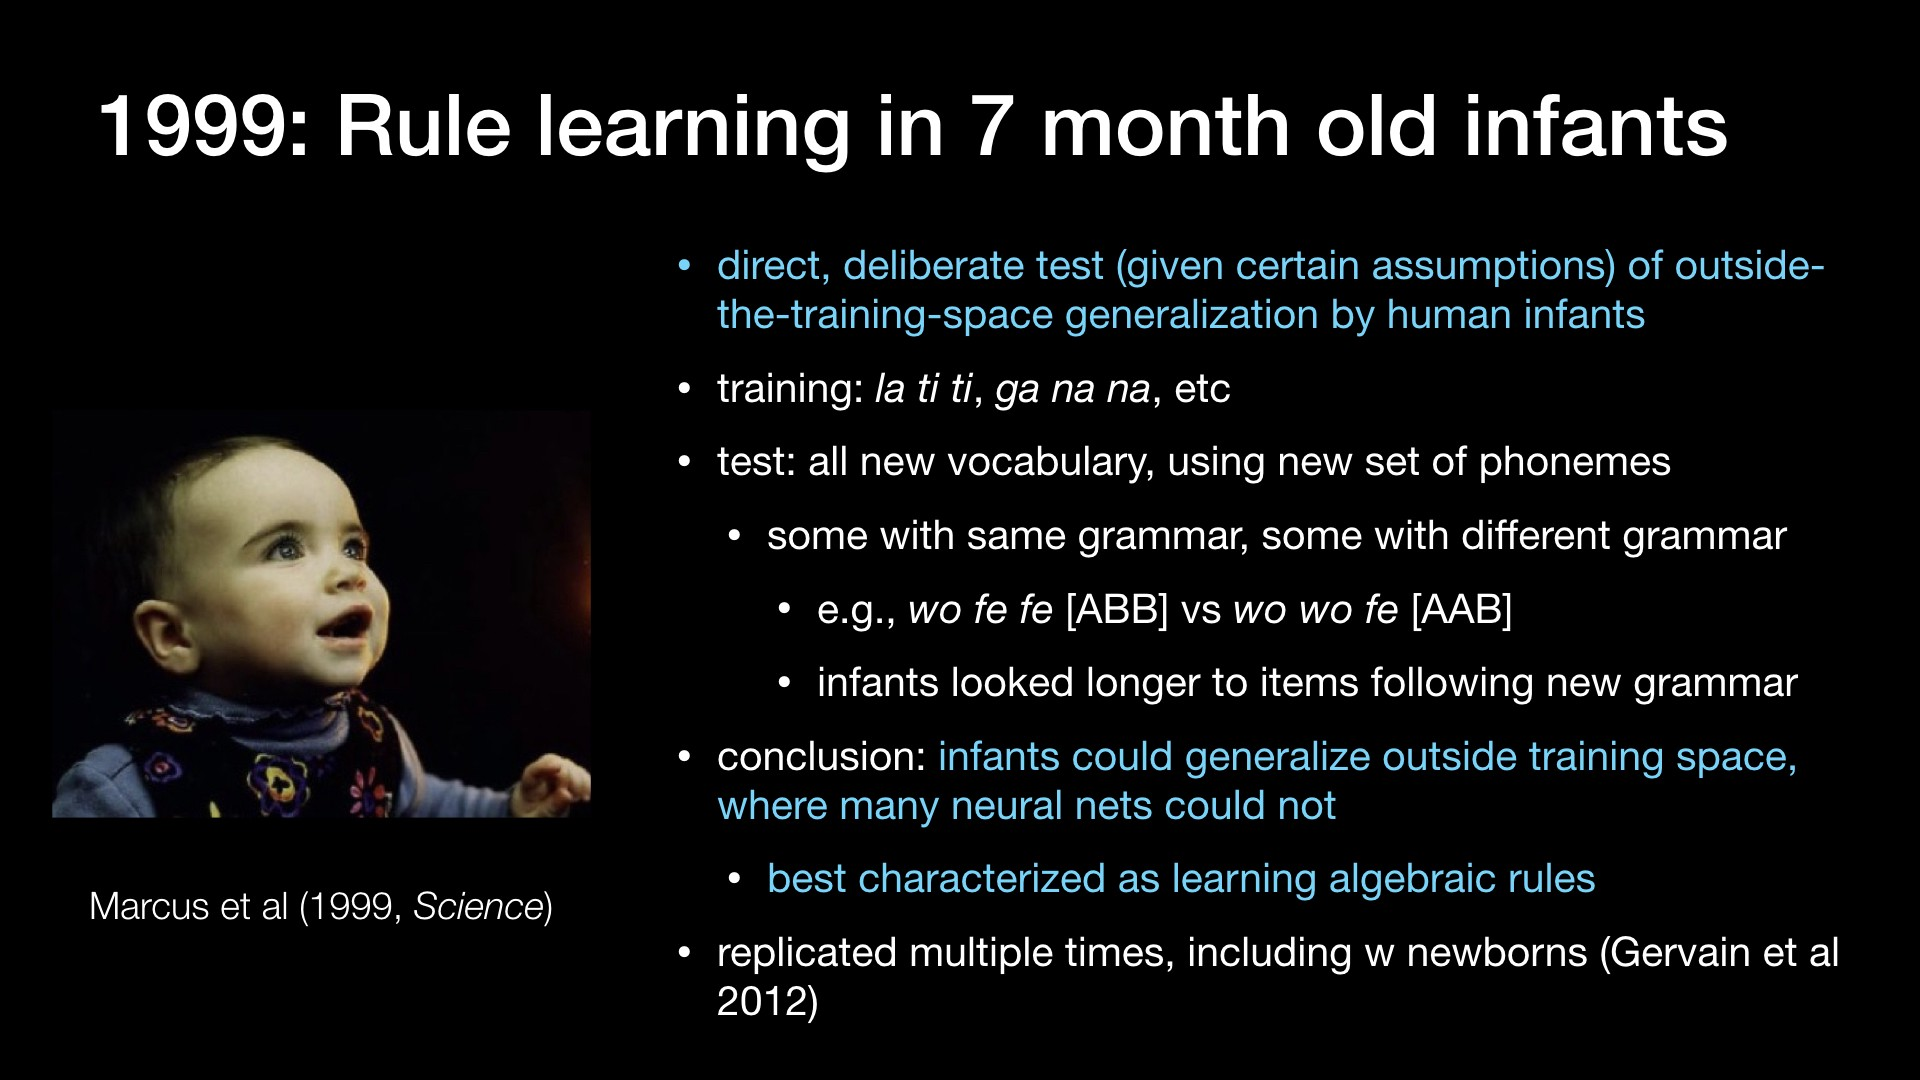 1999: Rule learning in 7 month old infants